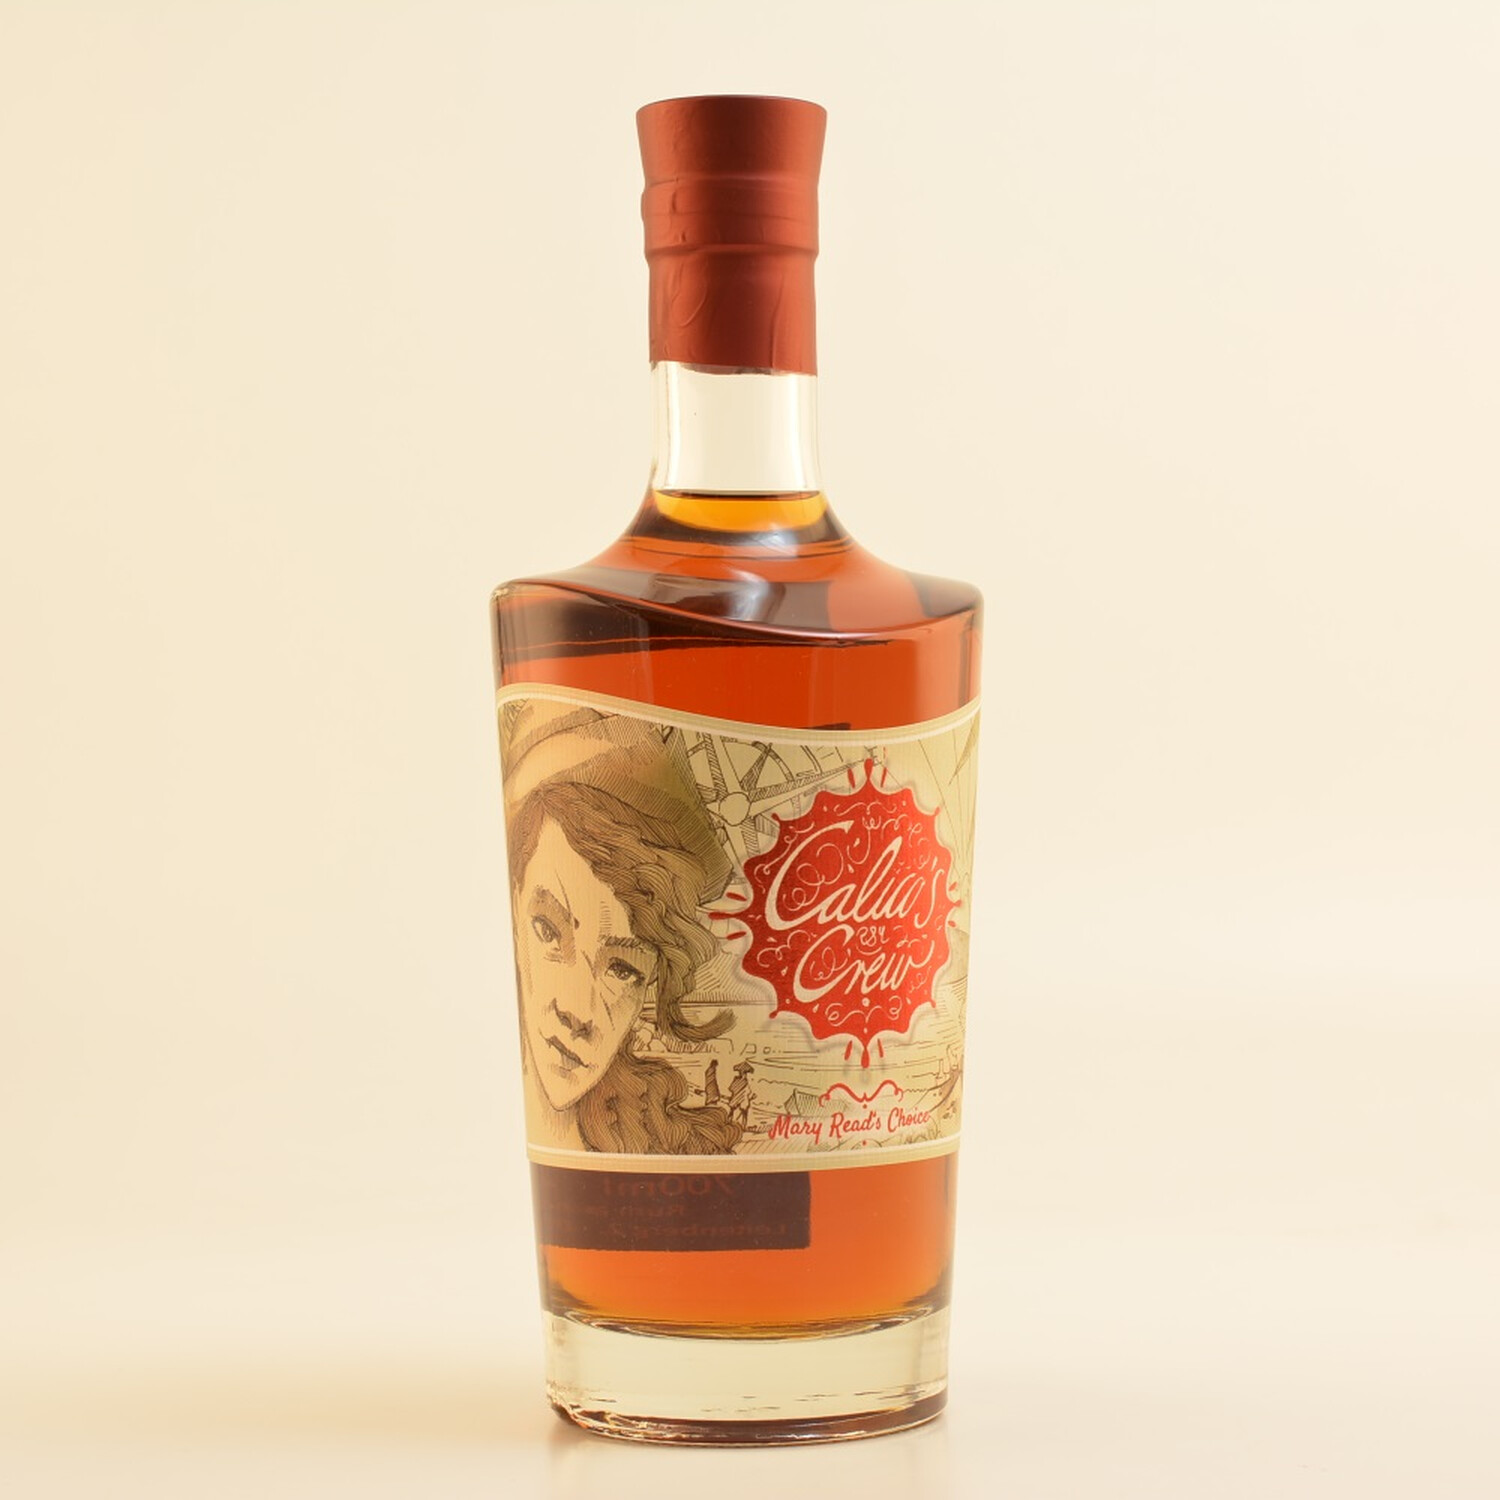 Calico's Crew Rum Mary Read's Choice 40% 0,7l, 38,90